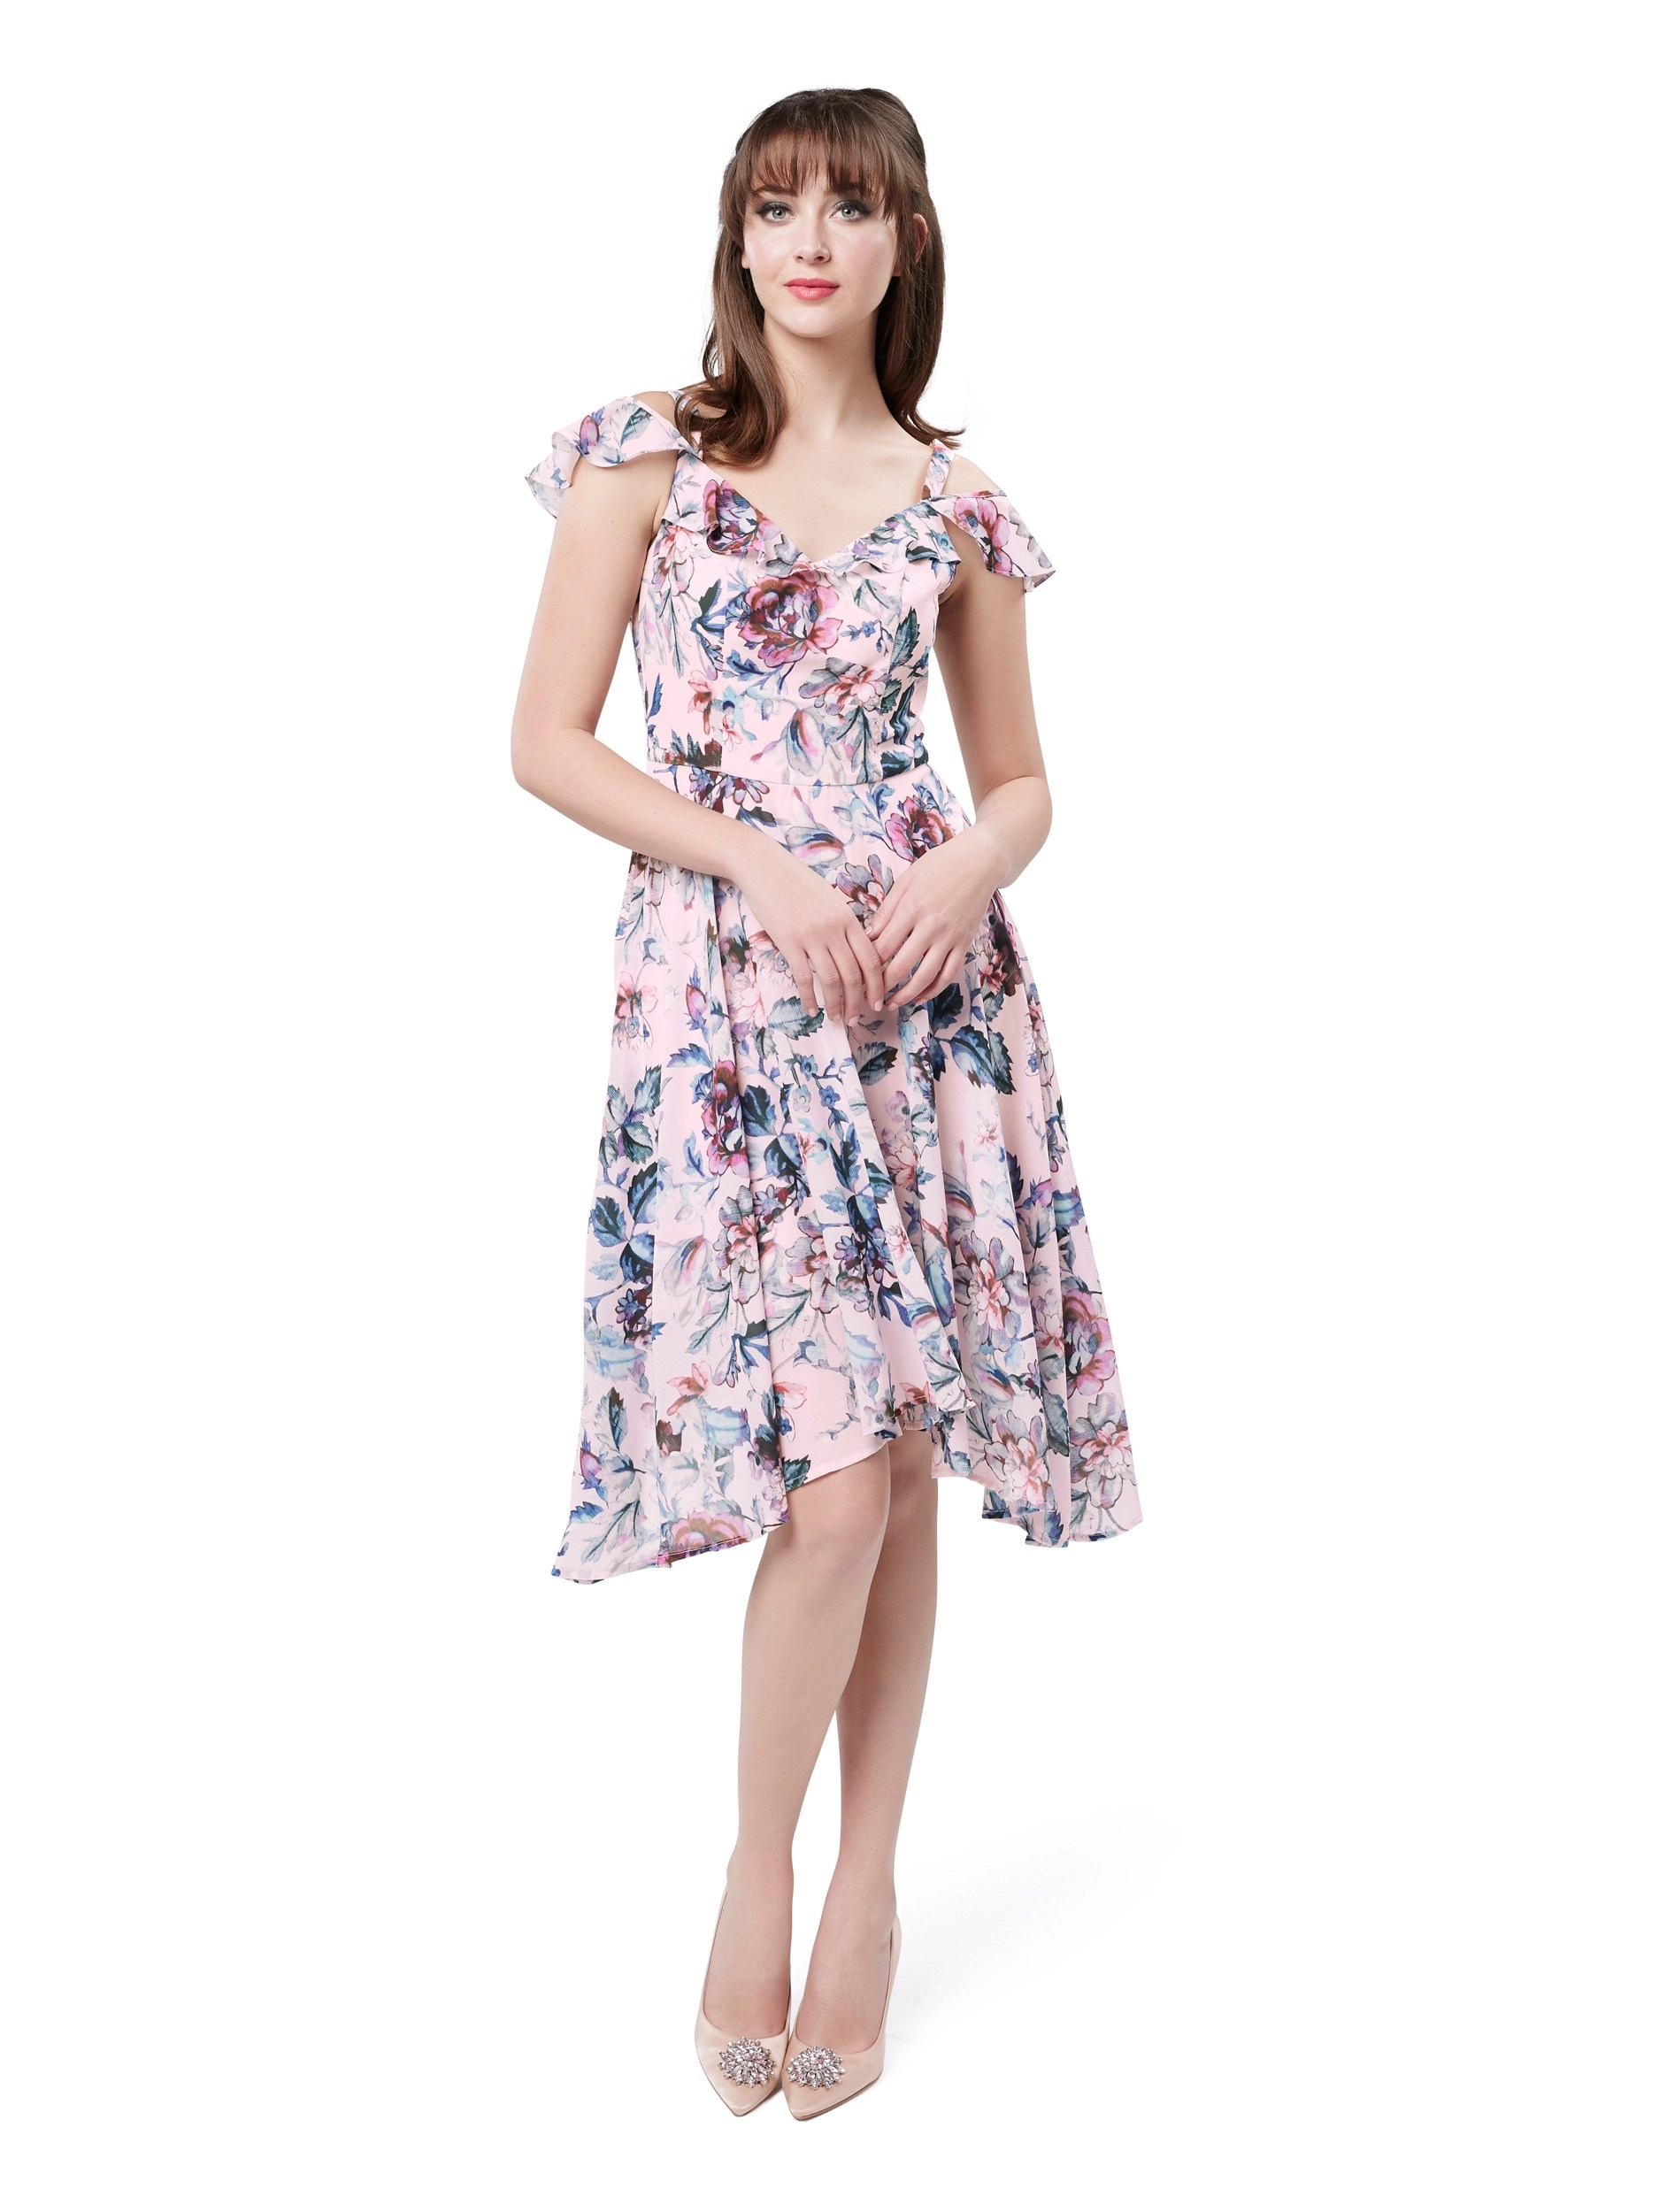 Endless Summer Dress  Shop Dresses Online from Review  Review Australia